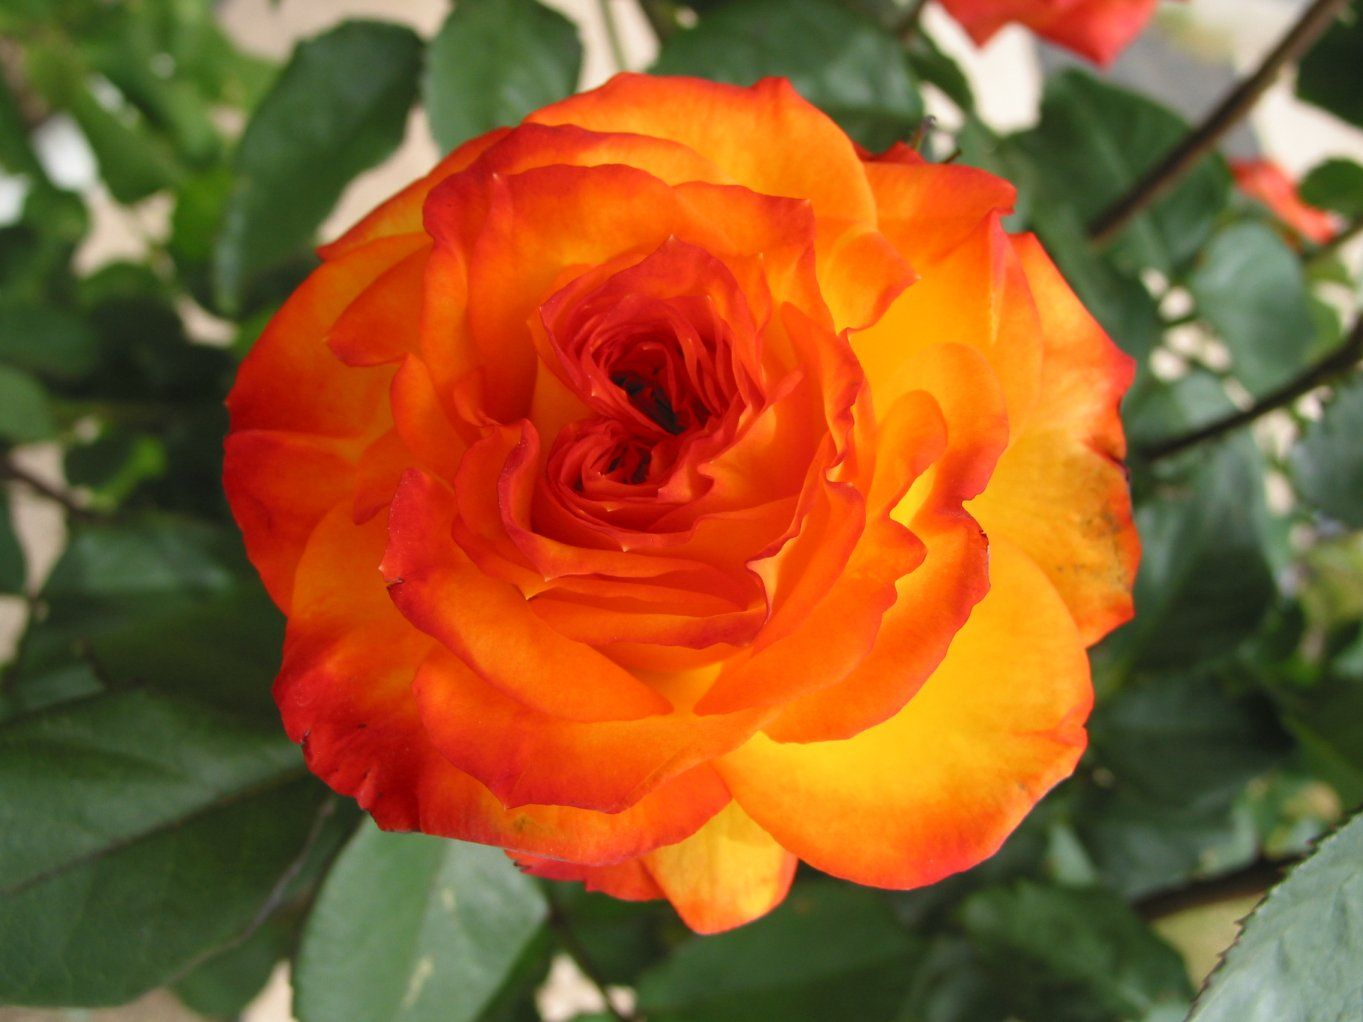 Orange Garden Rose orange rose pictures for wallpaper | beautiful orange rose